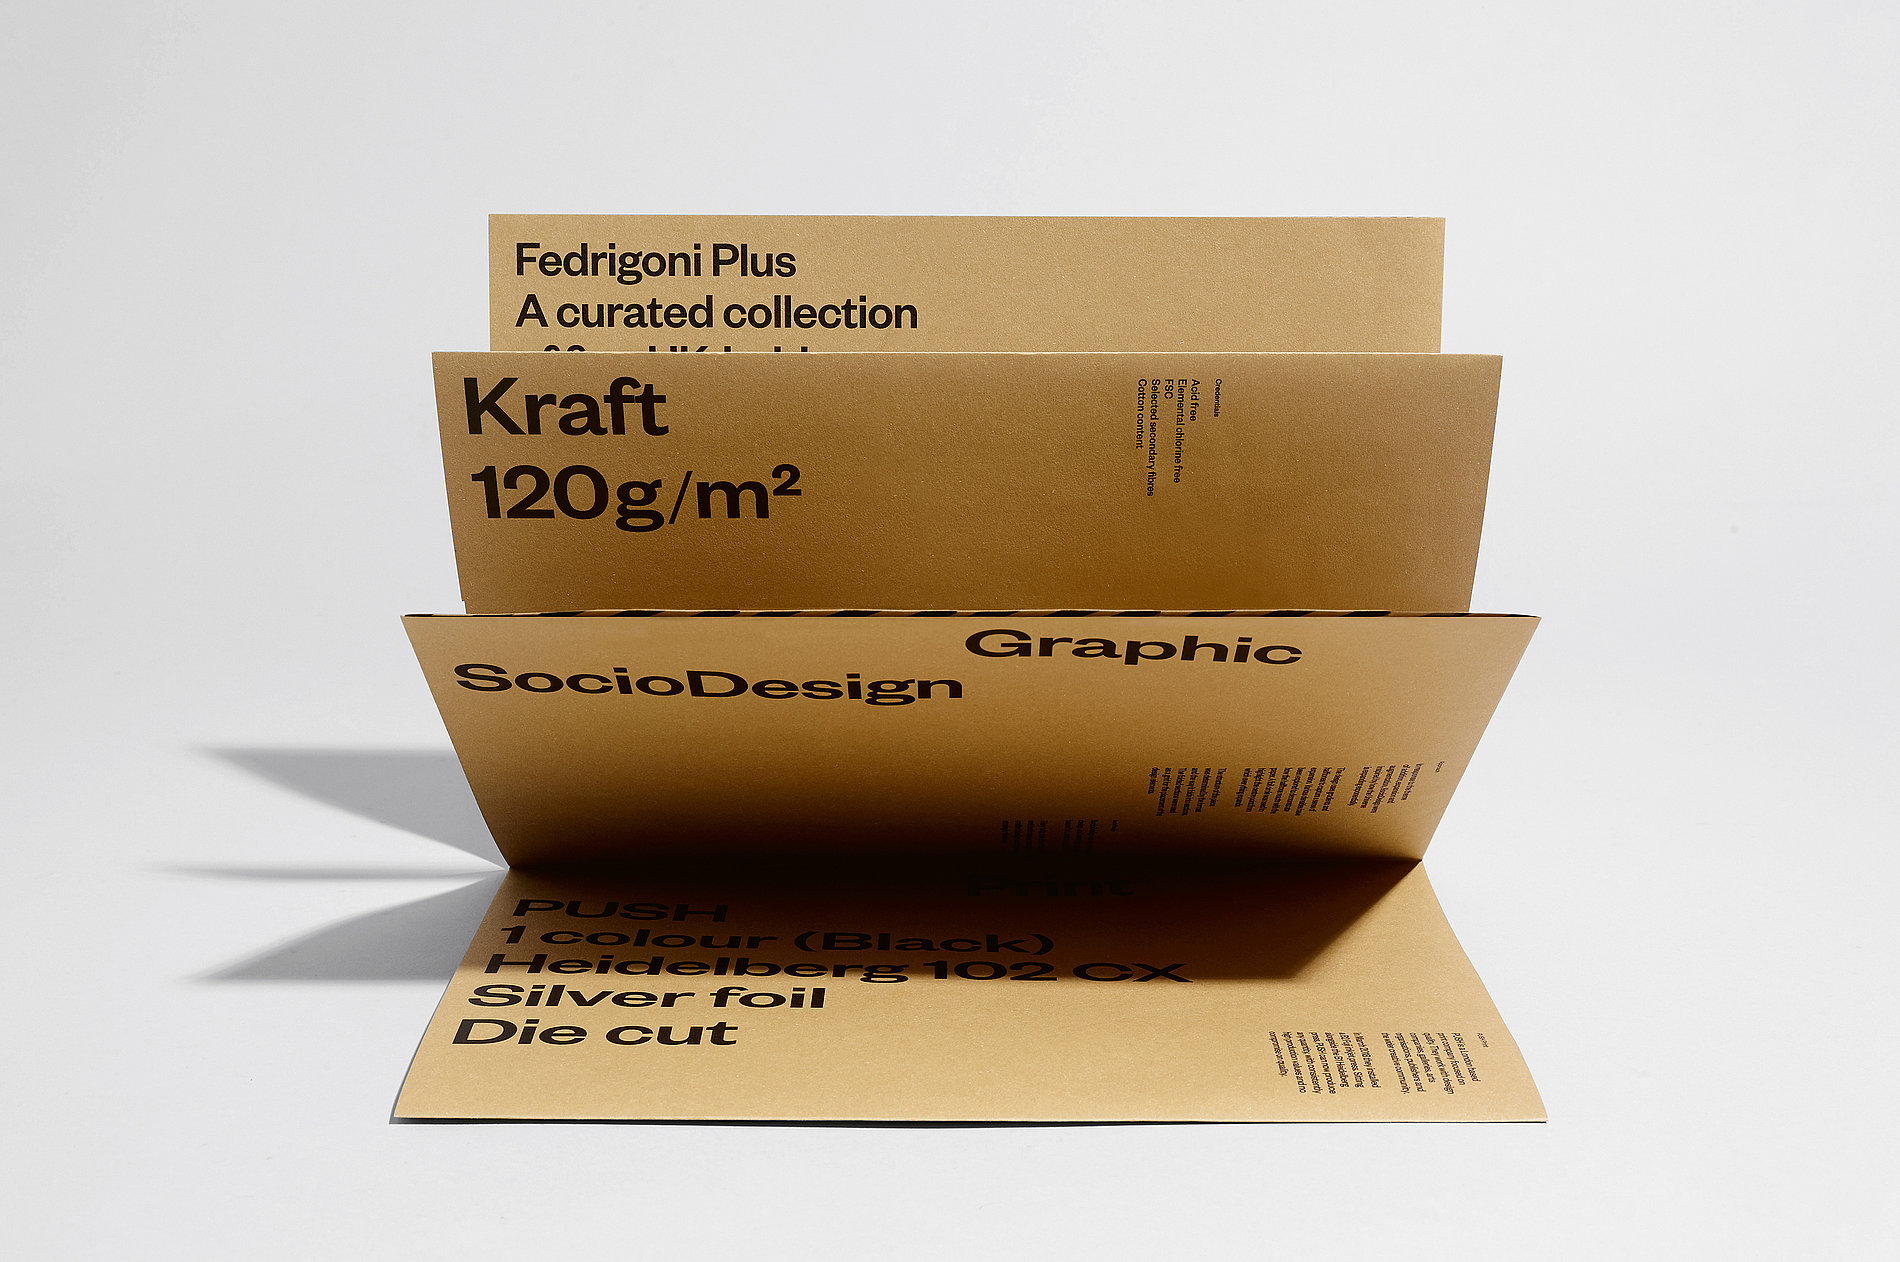 Fedrigoni Plus | Red Dot Design Award